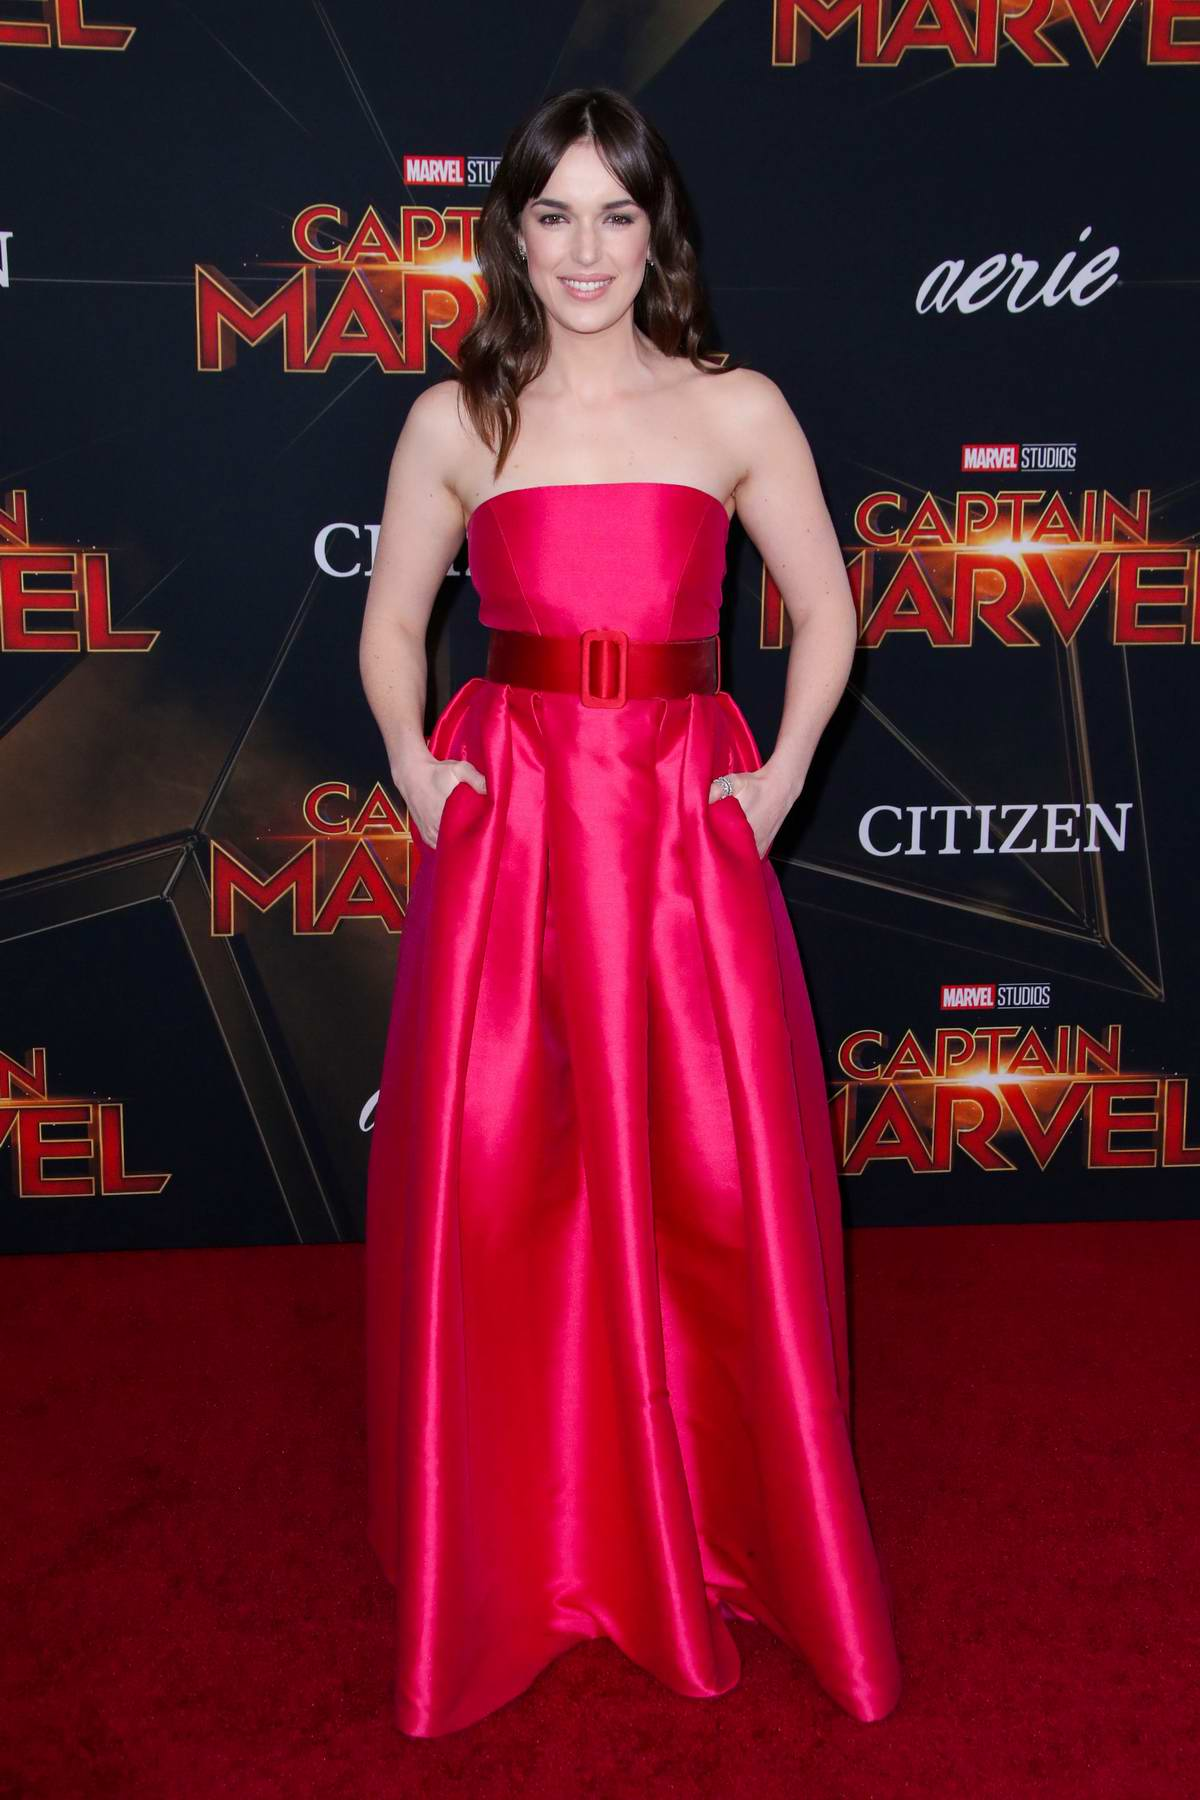 Elizabeth Henstridge attends the World Premiere of 'Captain Marvel' at the El Capitan Theatre in Hollywood, California